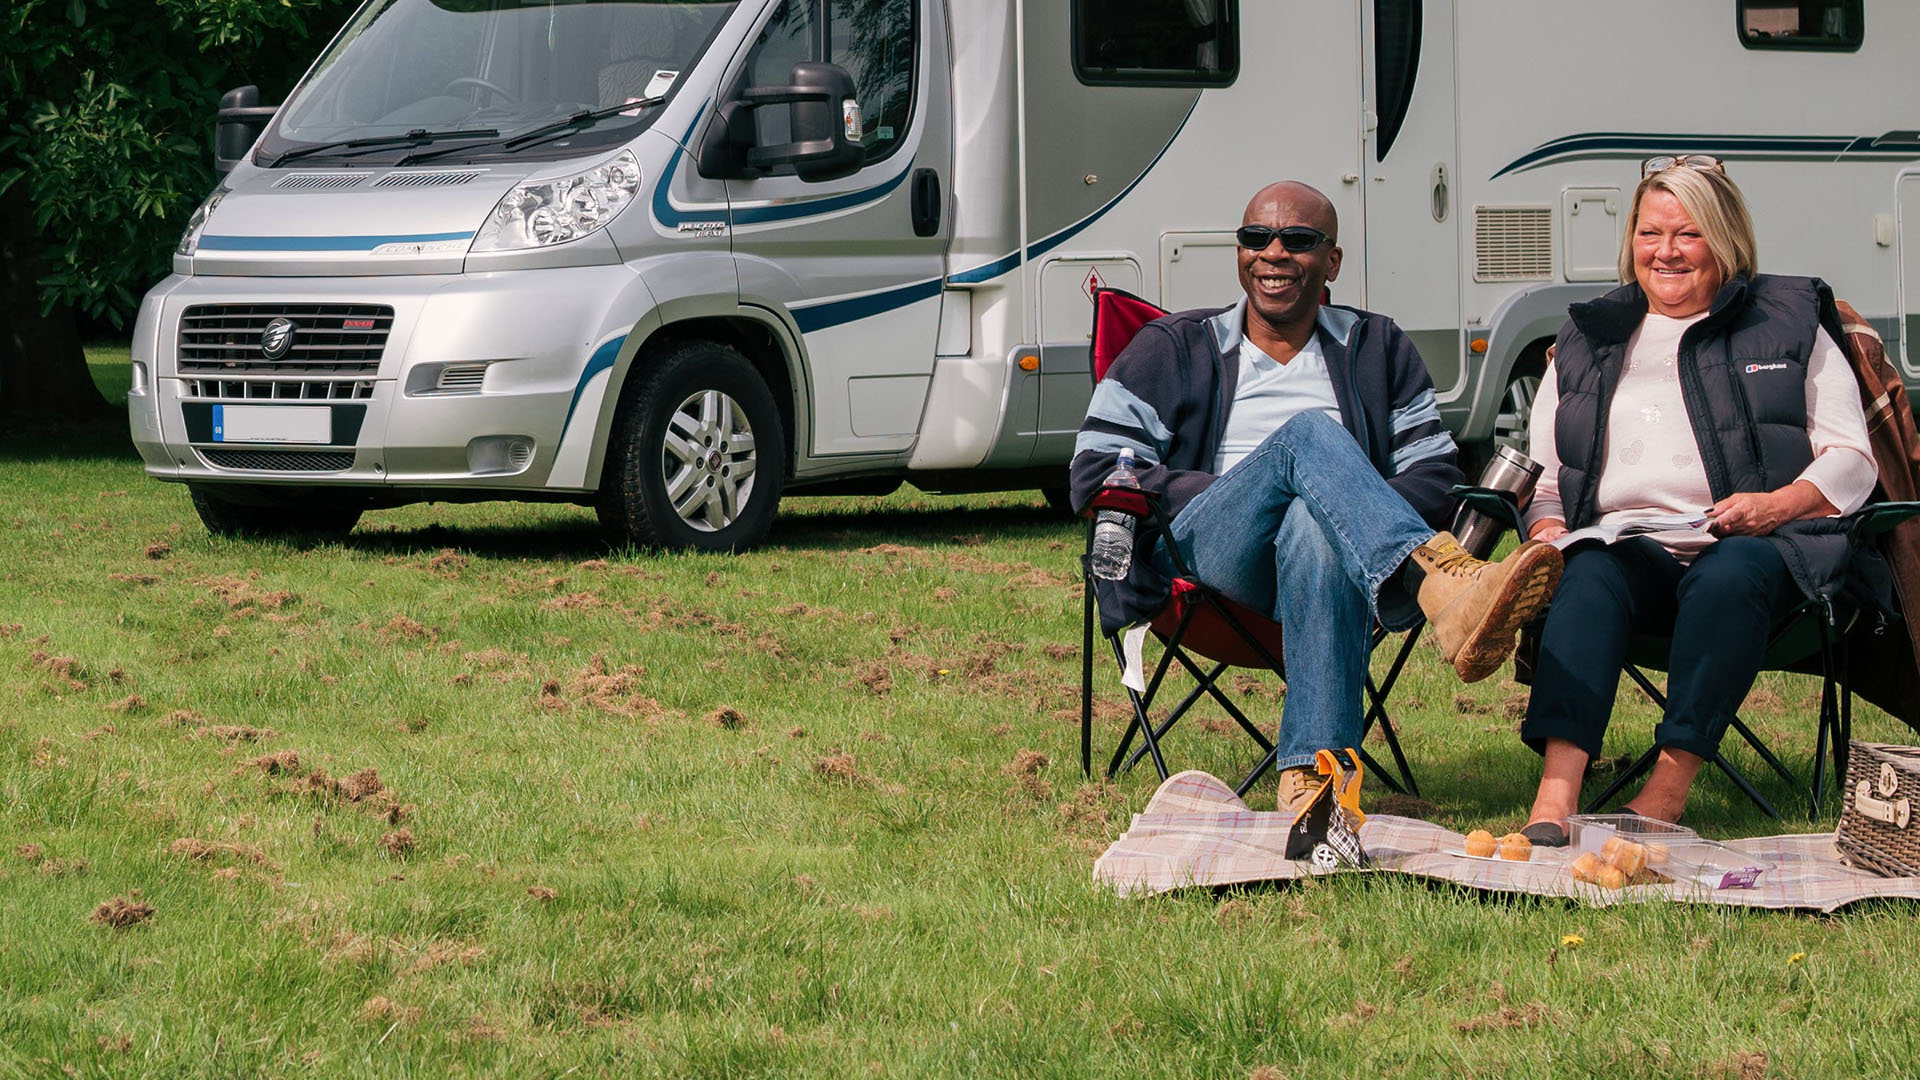 Two people relaxing next to their motorhome